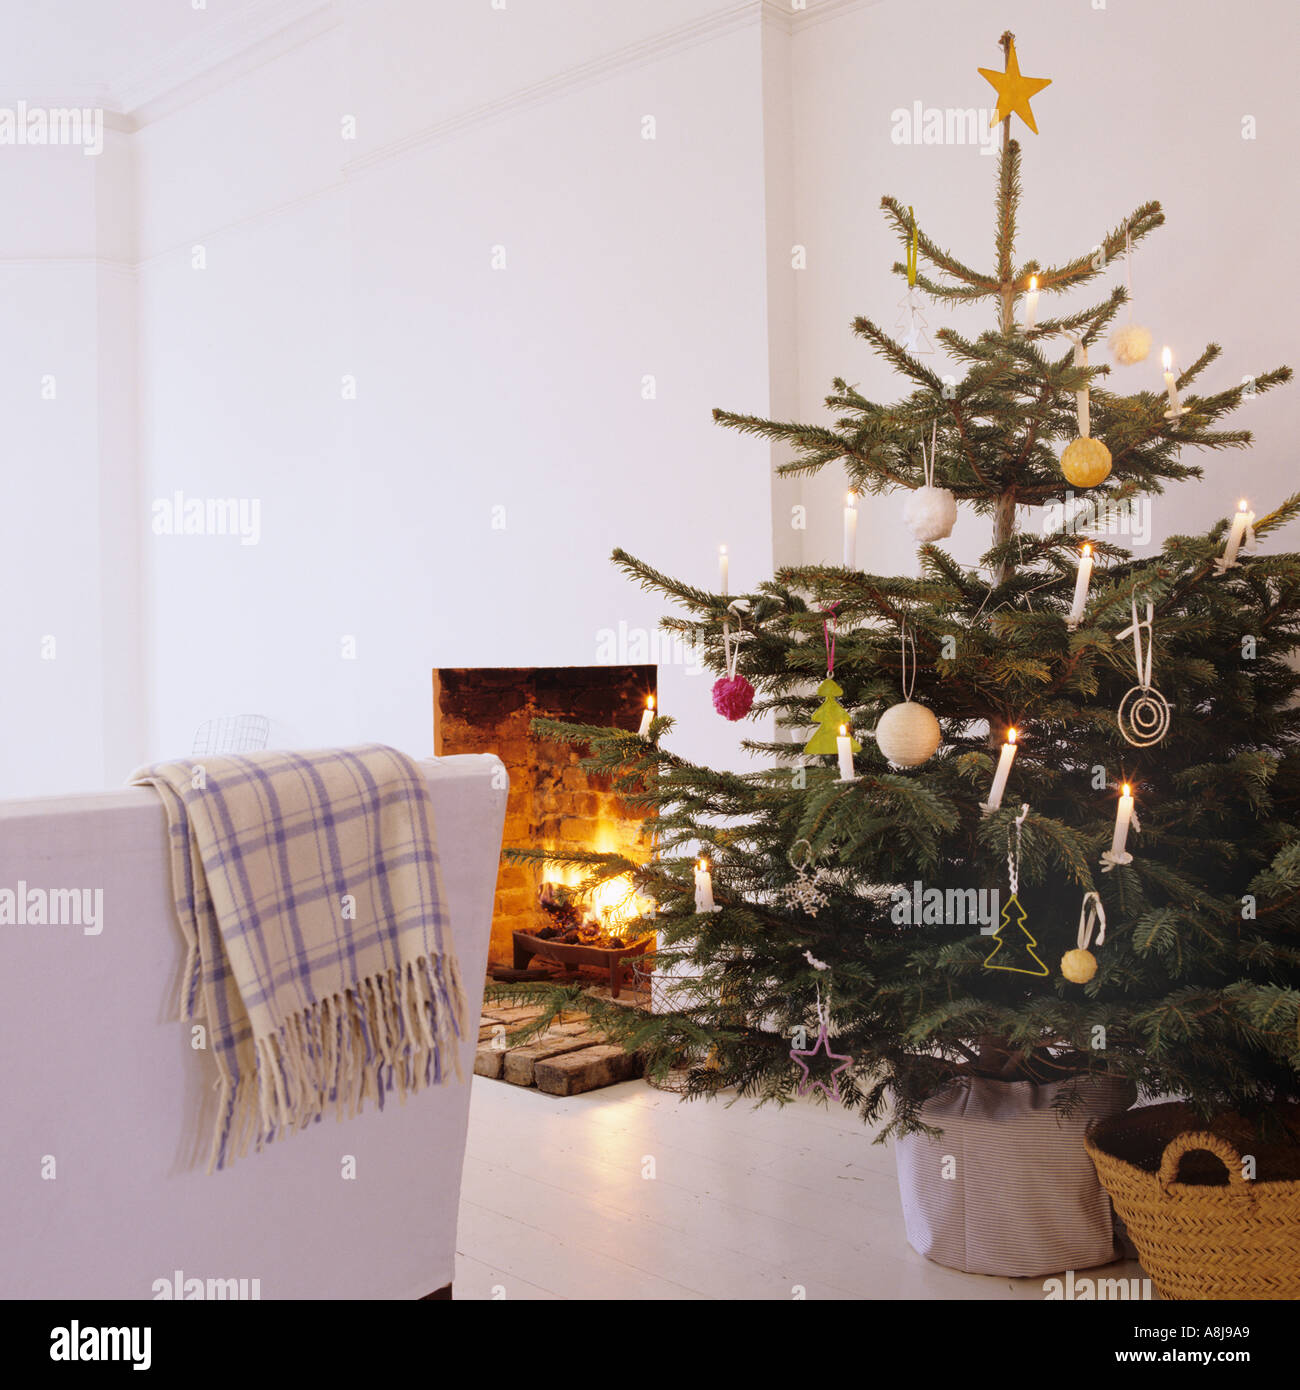 Decorated Christmas tree by open fireplace - Stock Image